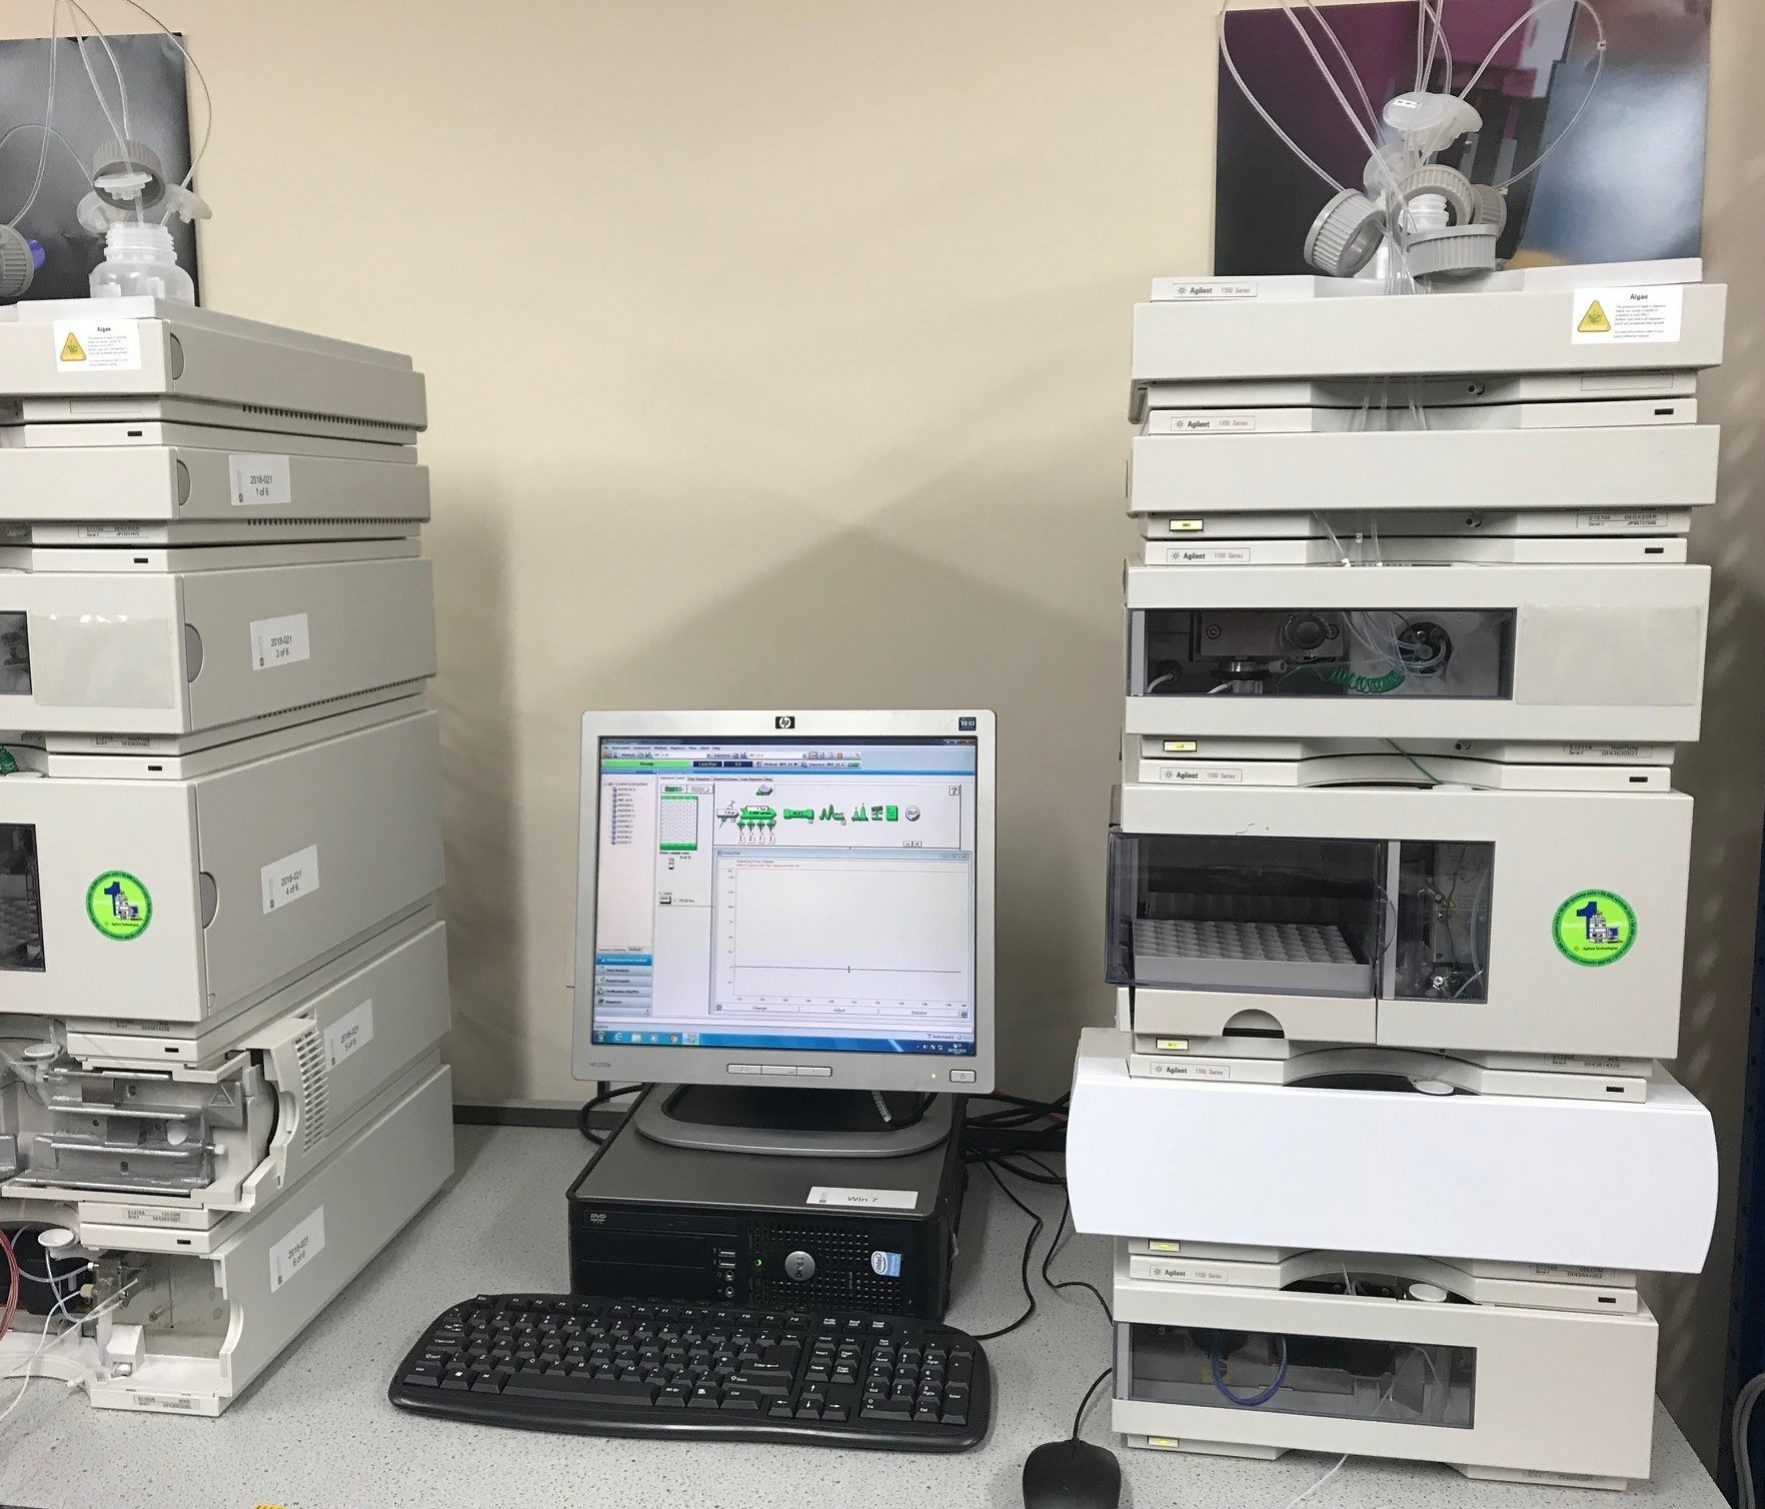 Agilent 1100 complete system